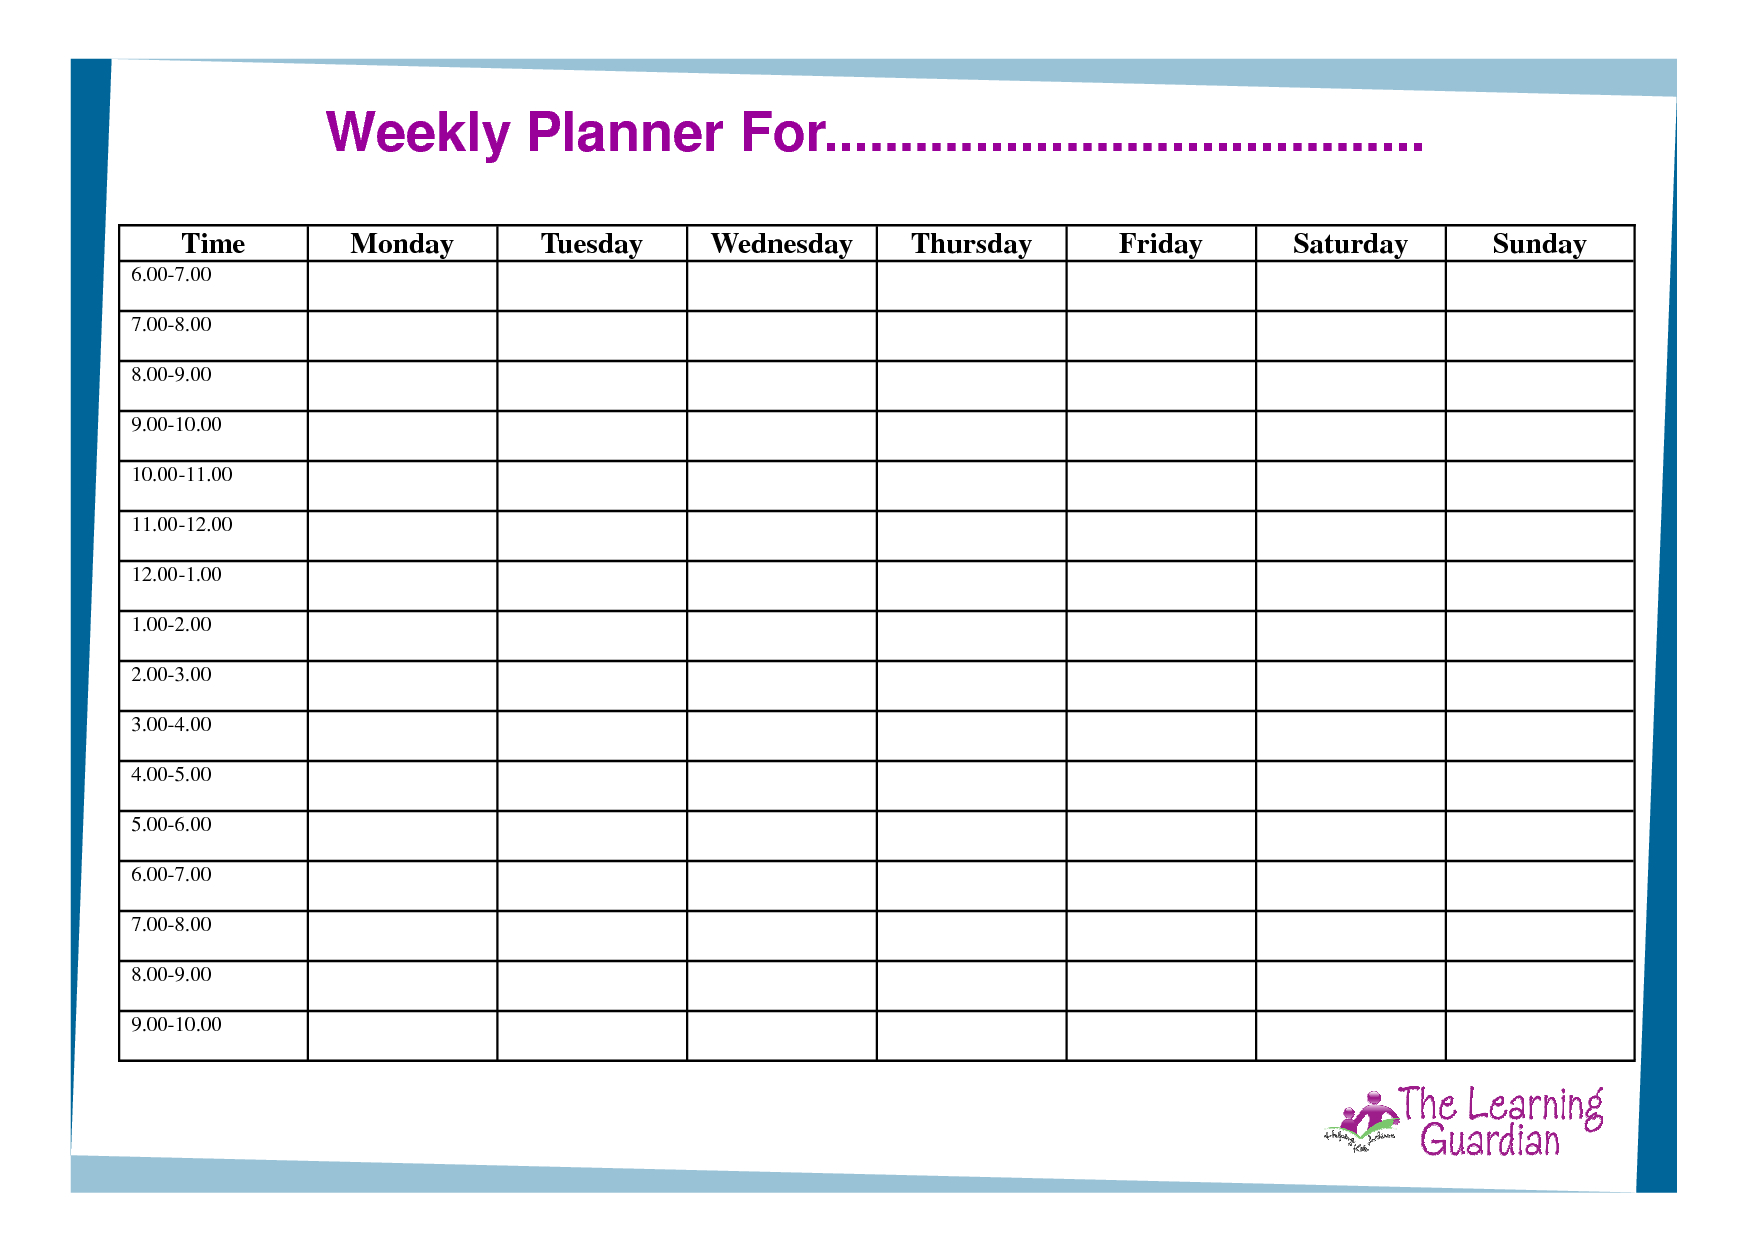 Free Printable Weekly Calendar Templates | Weekly Planner regarding Printable Weekly Calendar Monday Through Friday